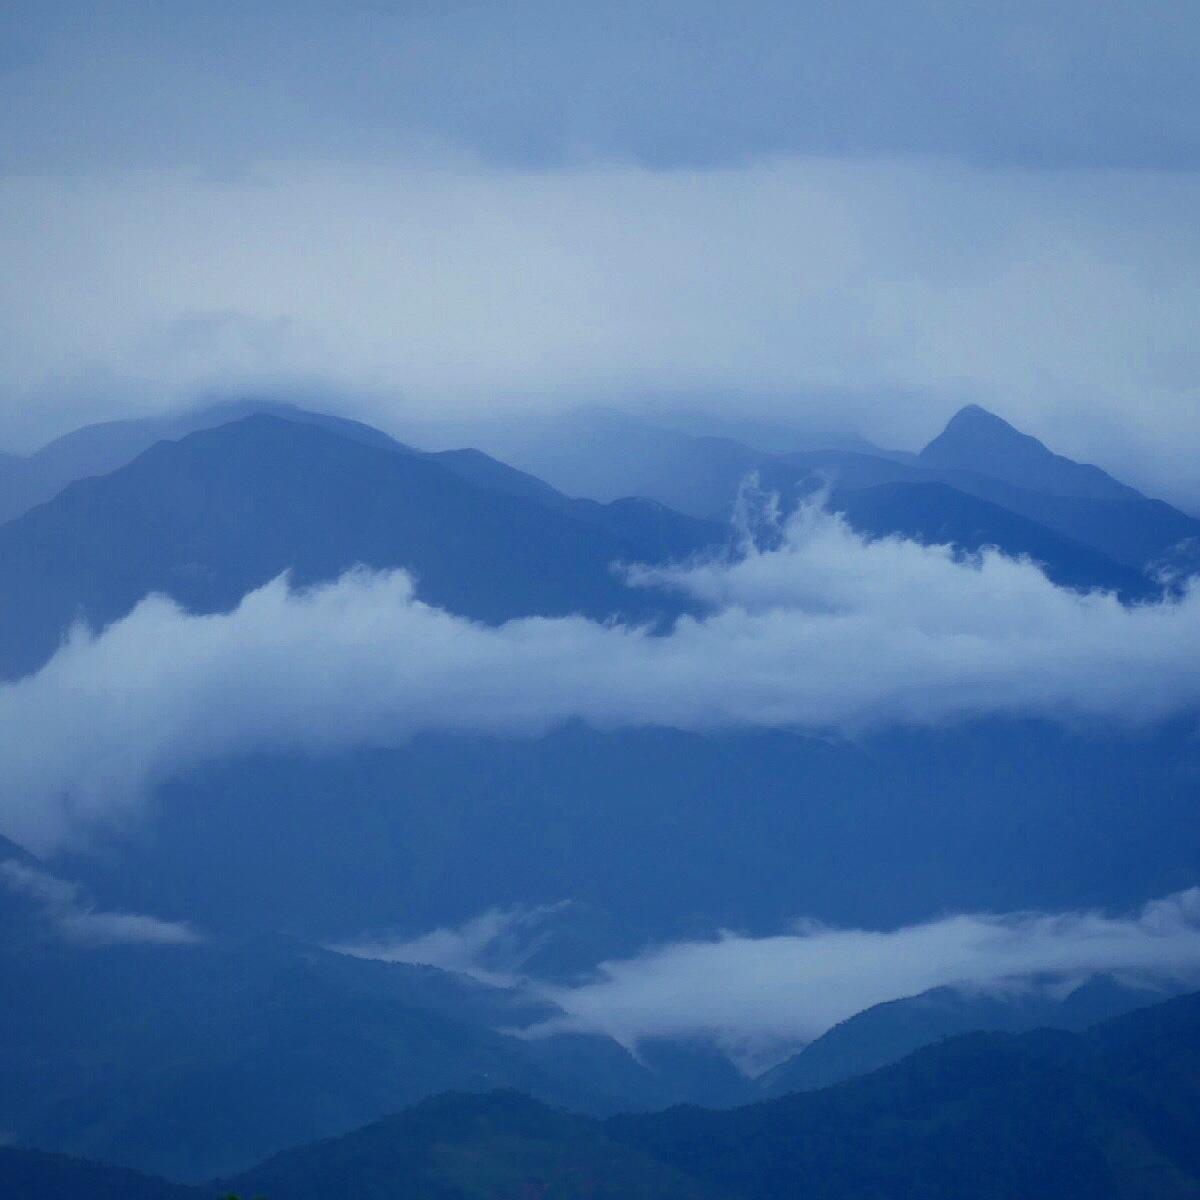 Mountains recede into the distance during a misty morning at the upper end of Montezuma Road. Noah Strycker